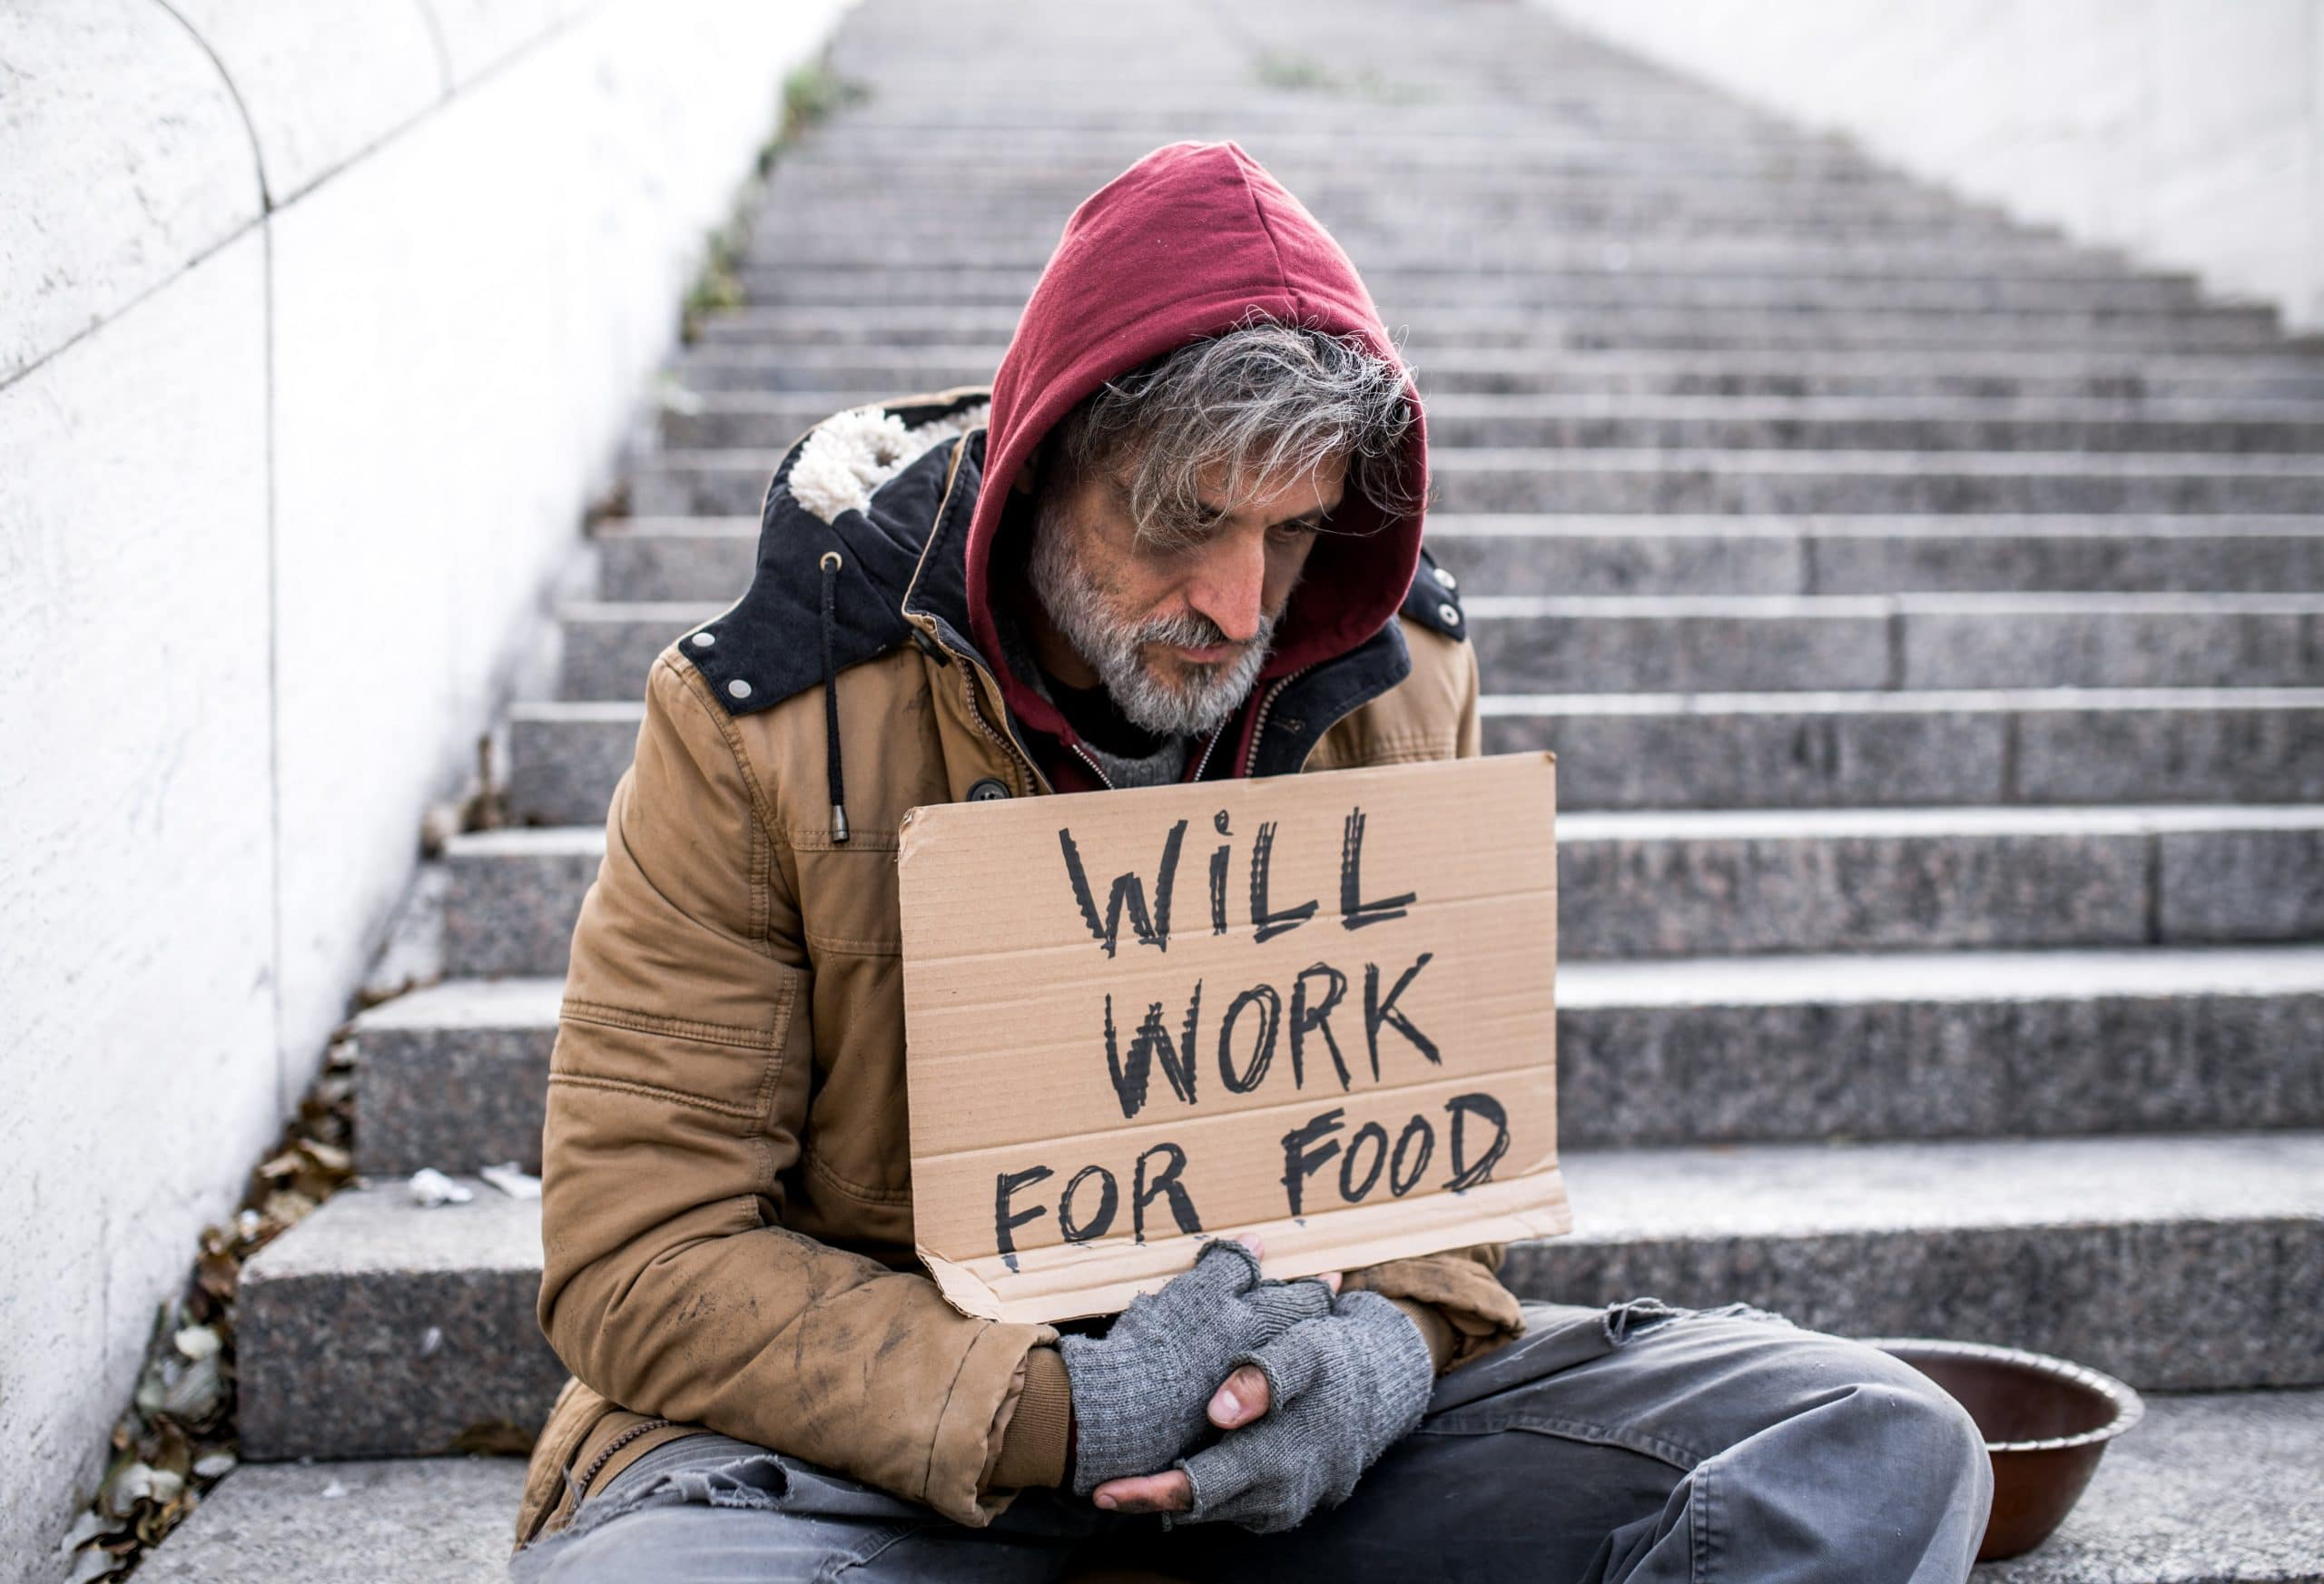 Homeless man willing to work